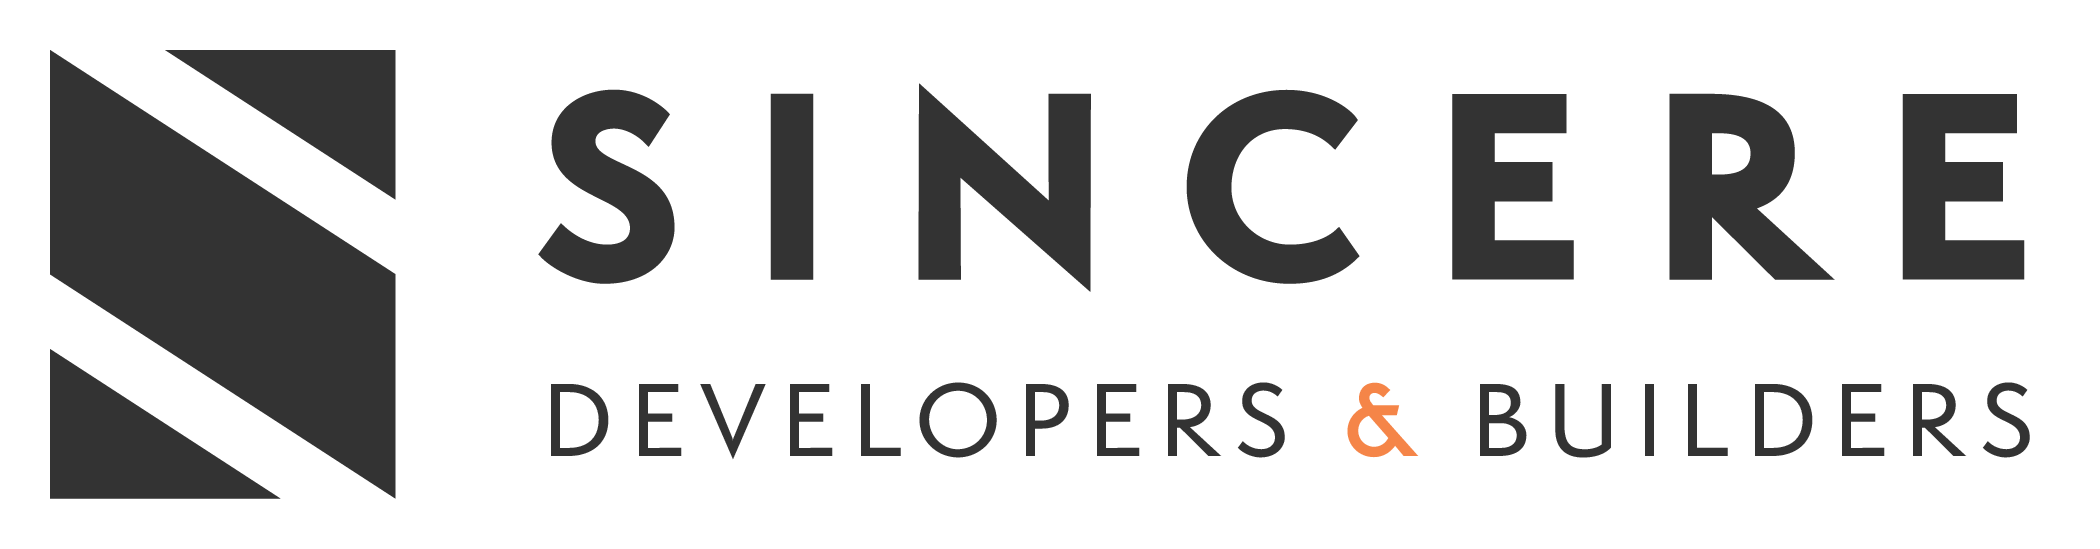 Sincere Developers and Builders